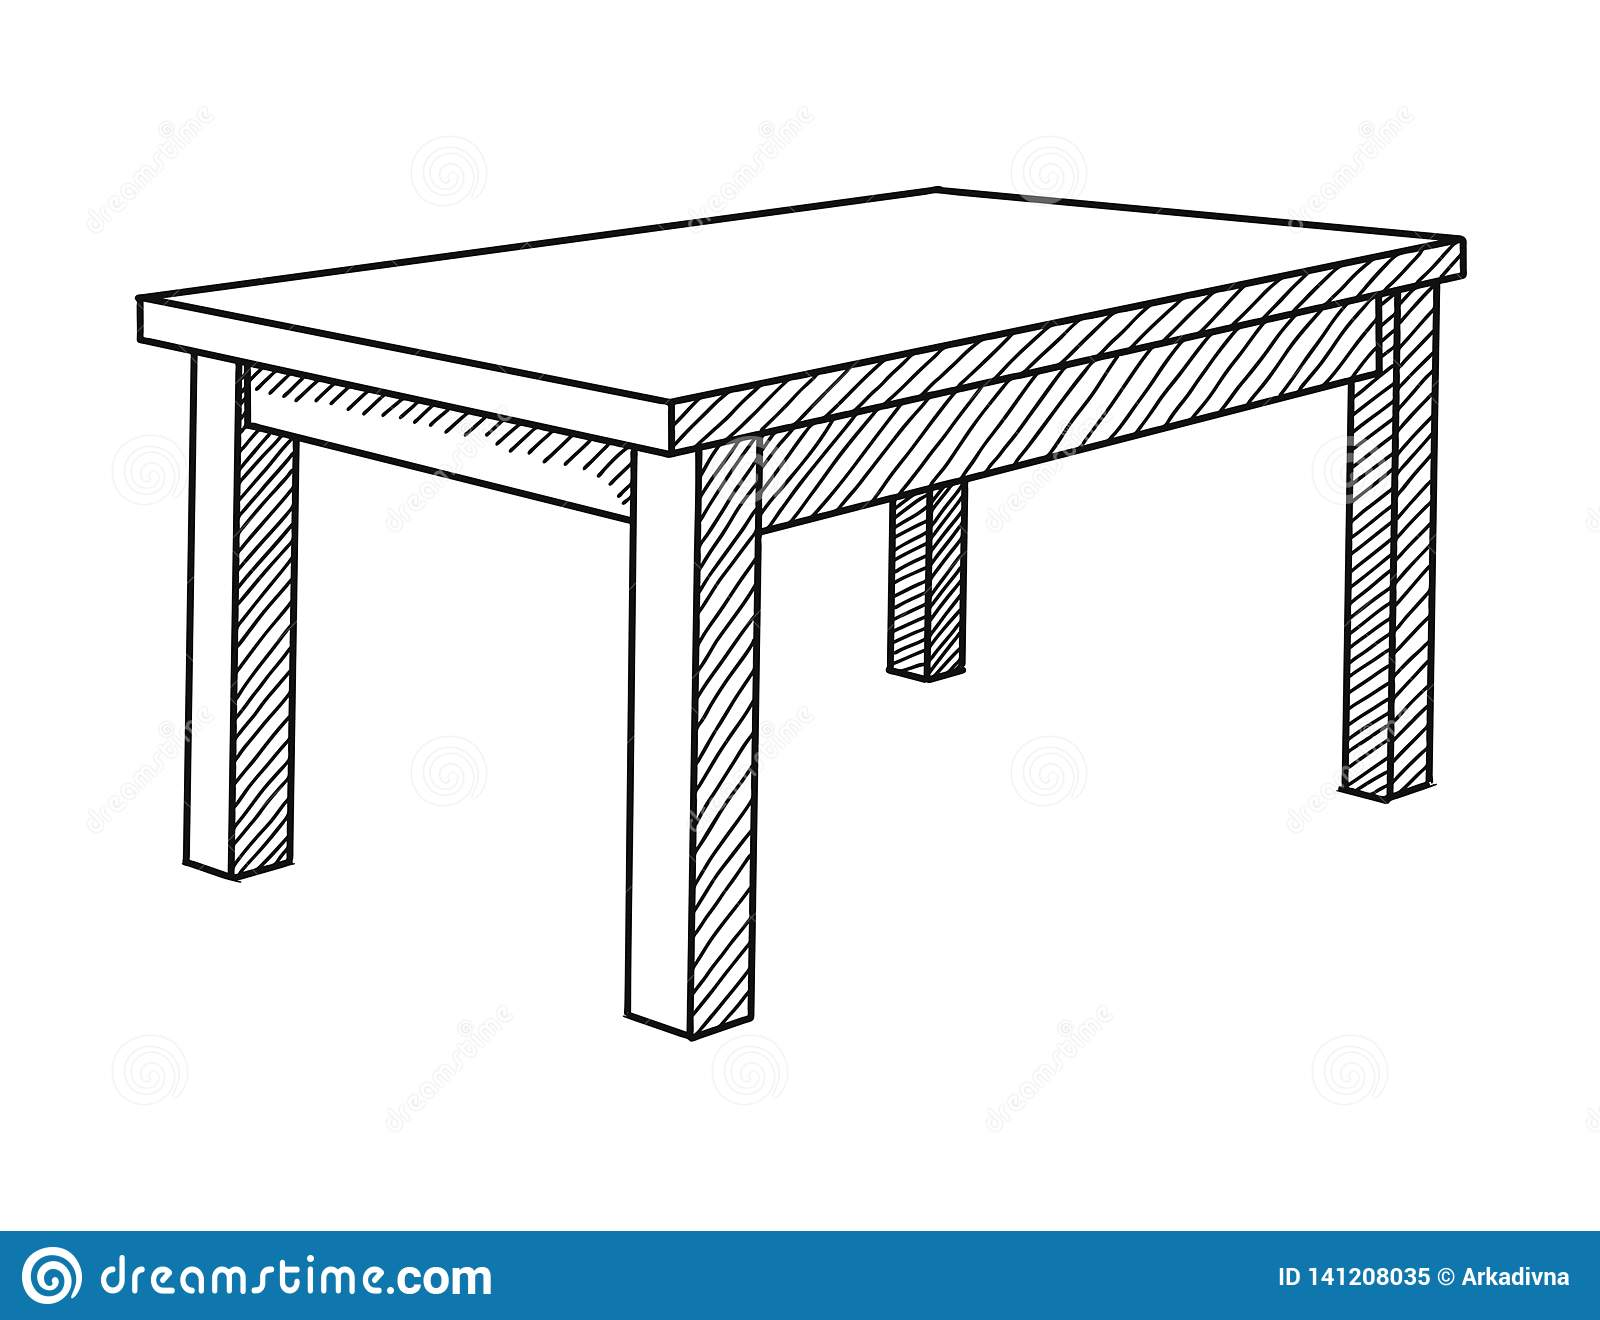 Realistic Sketch Of The Table In Perspective. Vector Stock